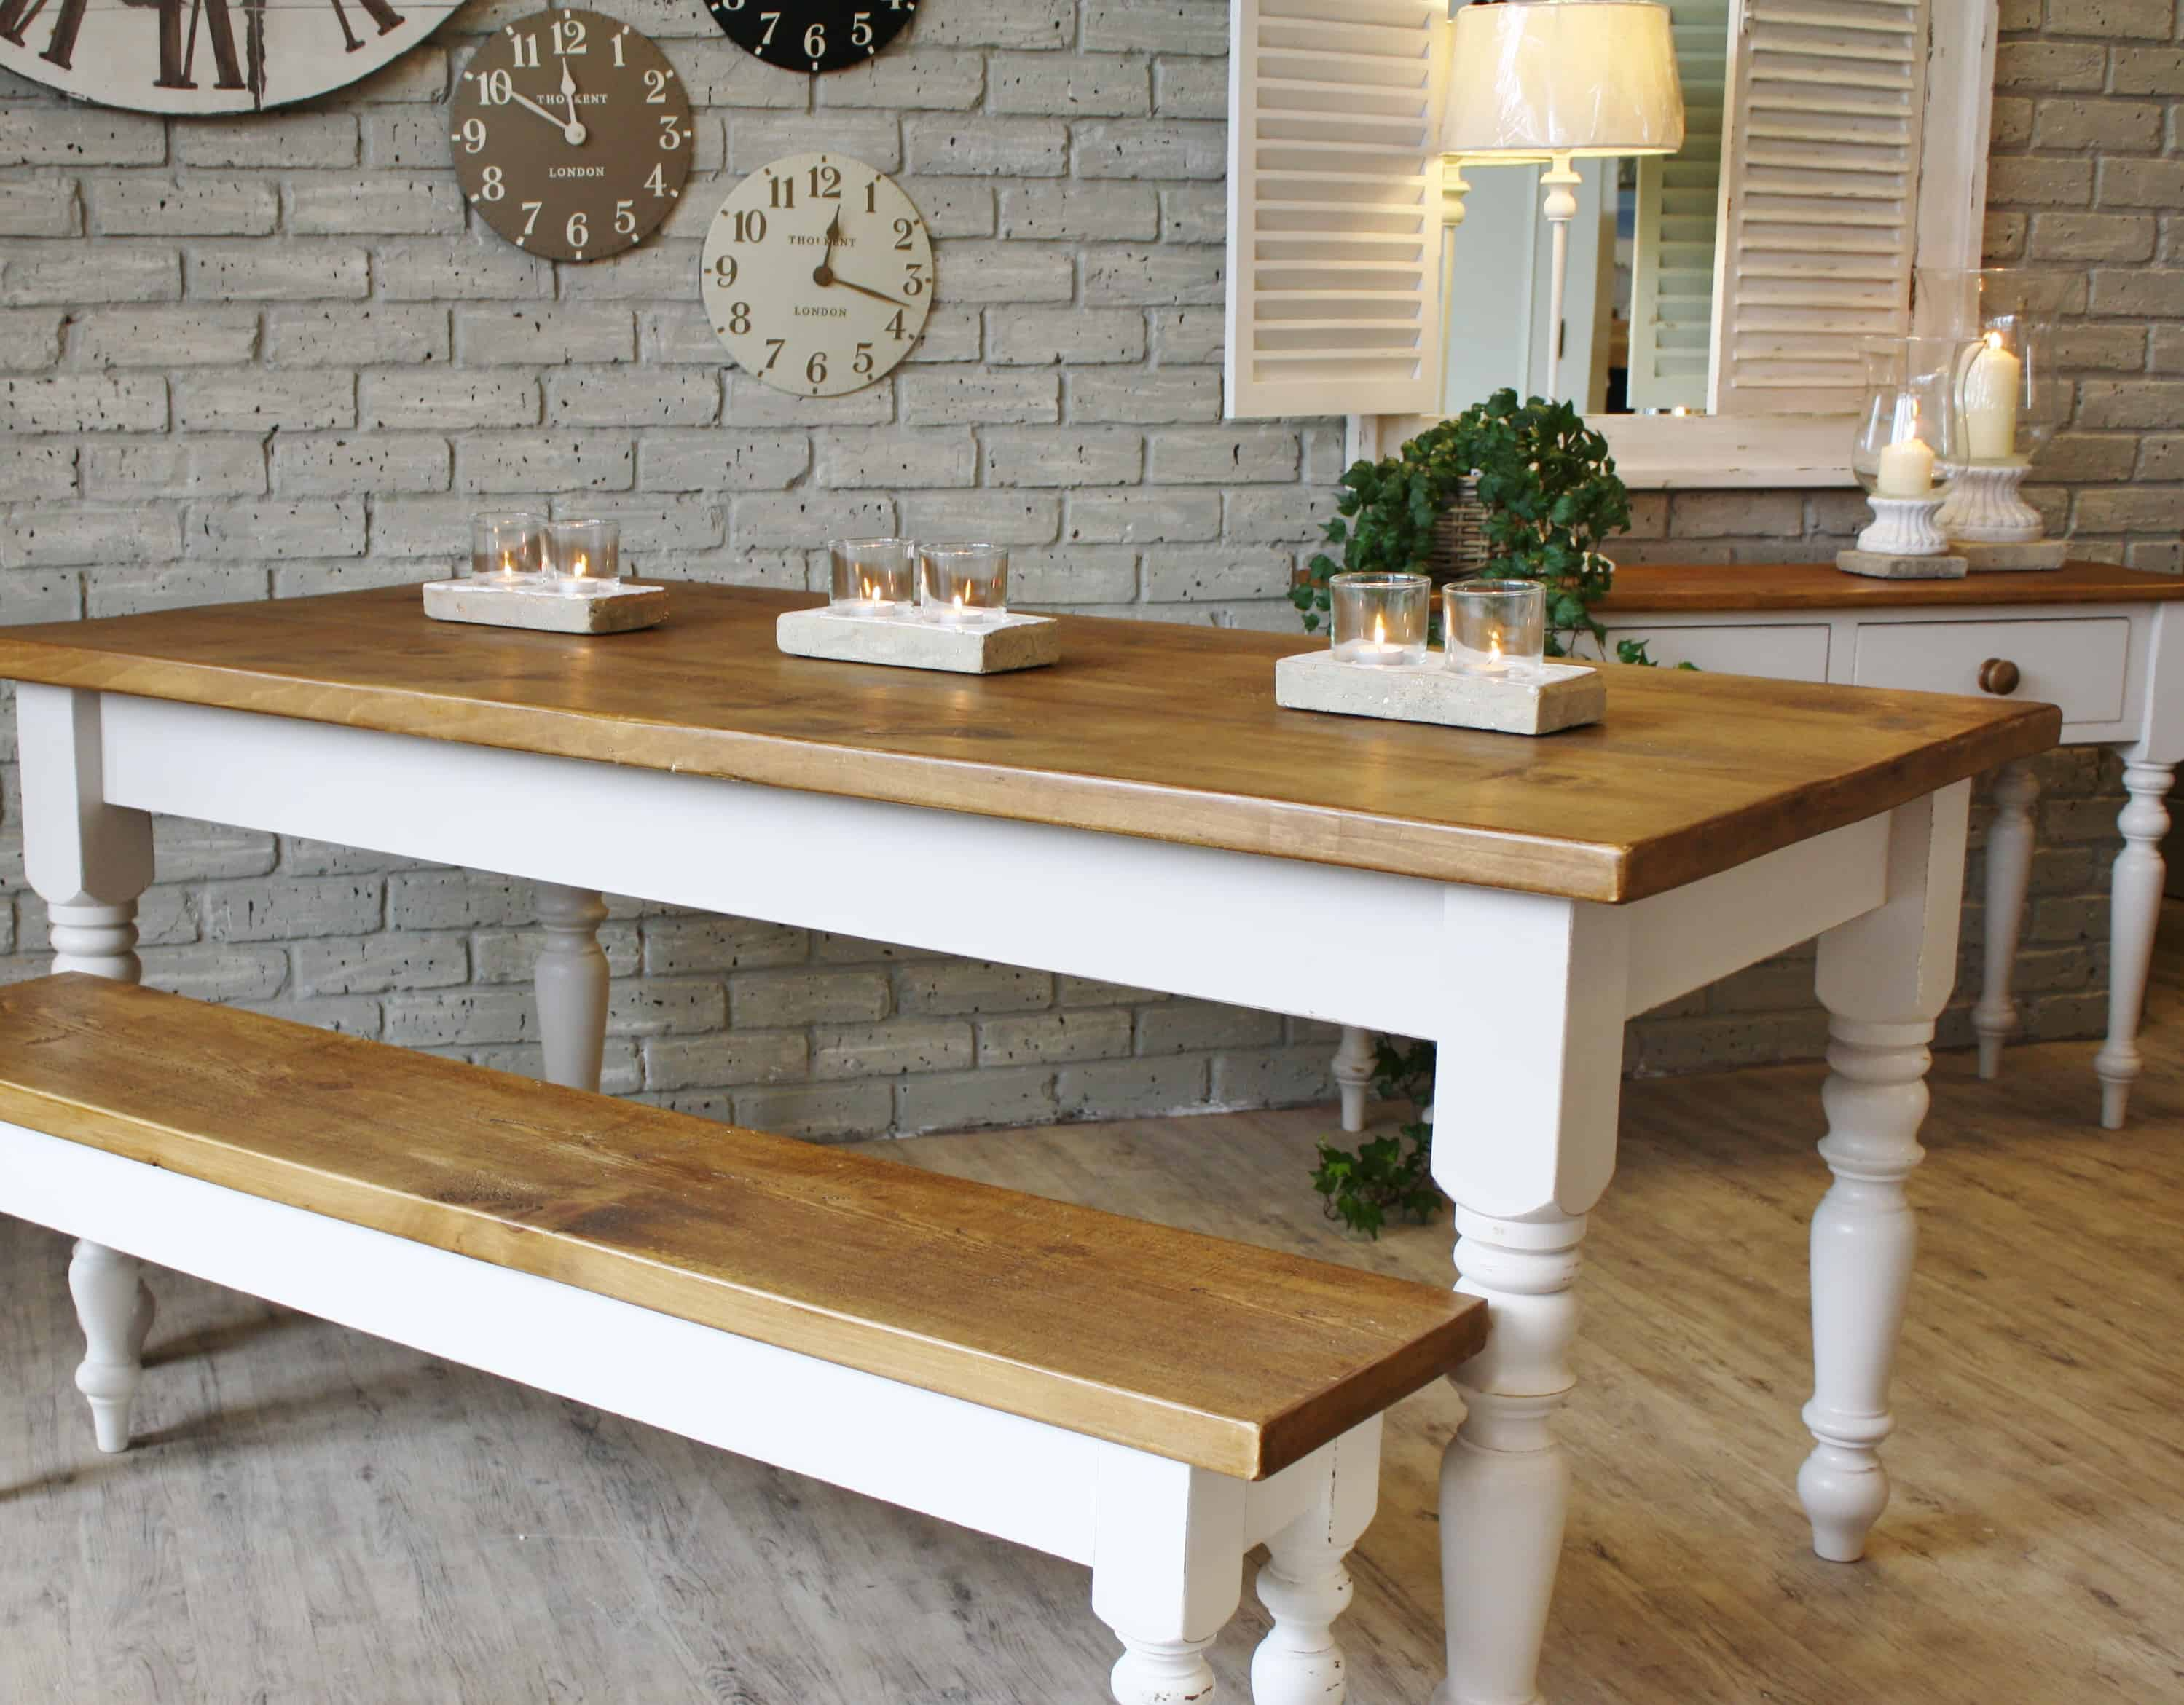 A bench is rustic, and it is the perfect addition to any dining table.